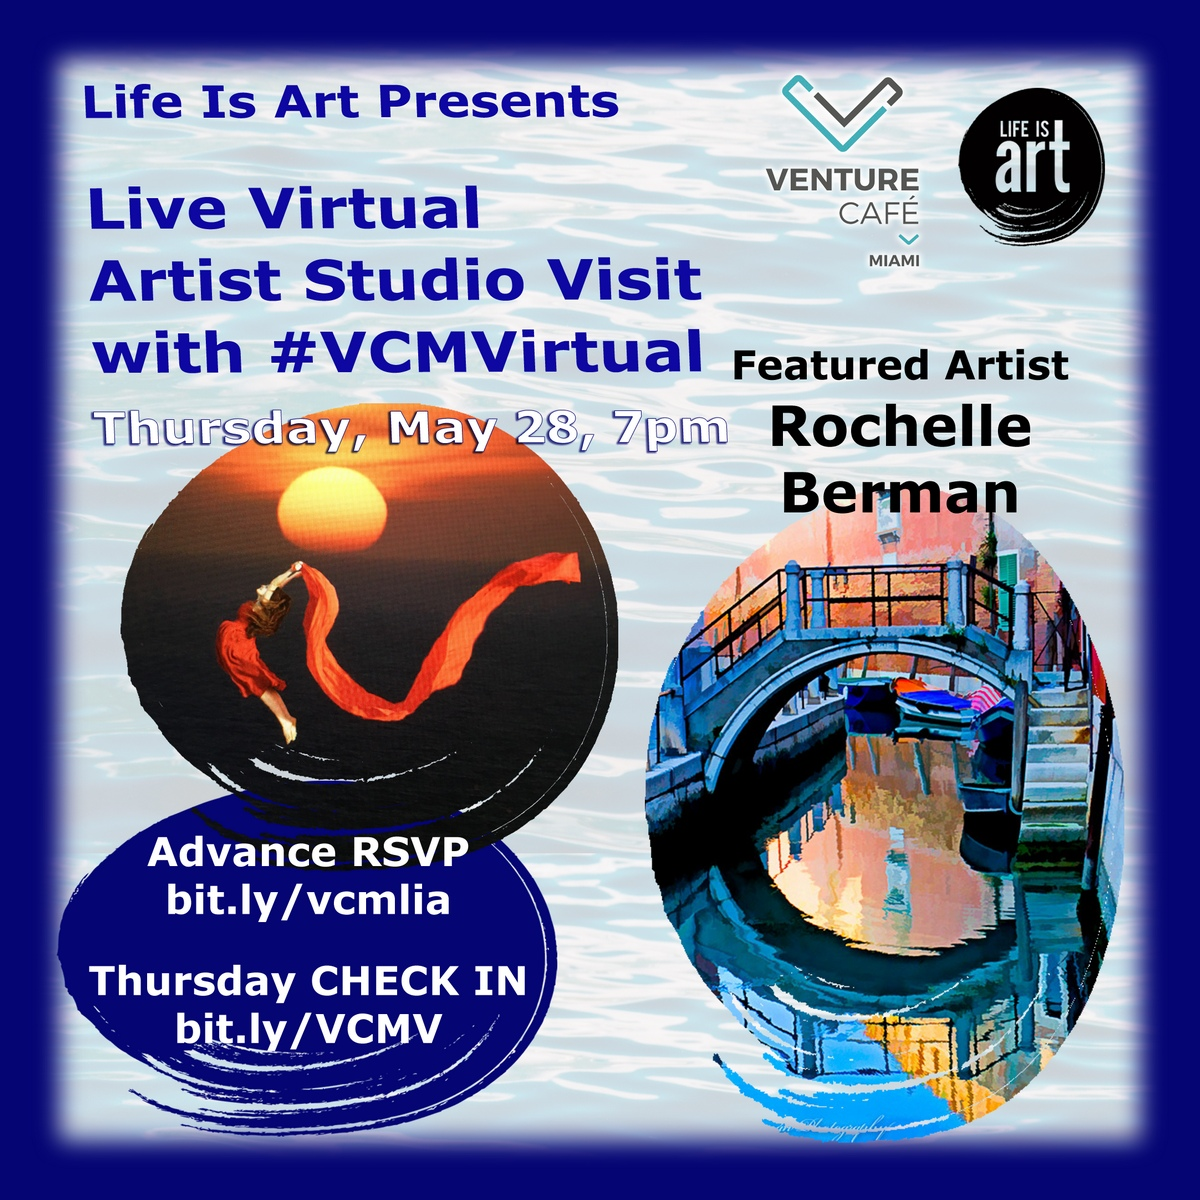 Live Artist Visit with Rochelle Berman at #VCMVirtual on May 28, 2020